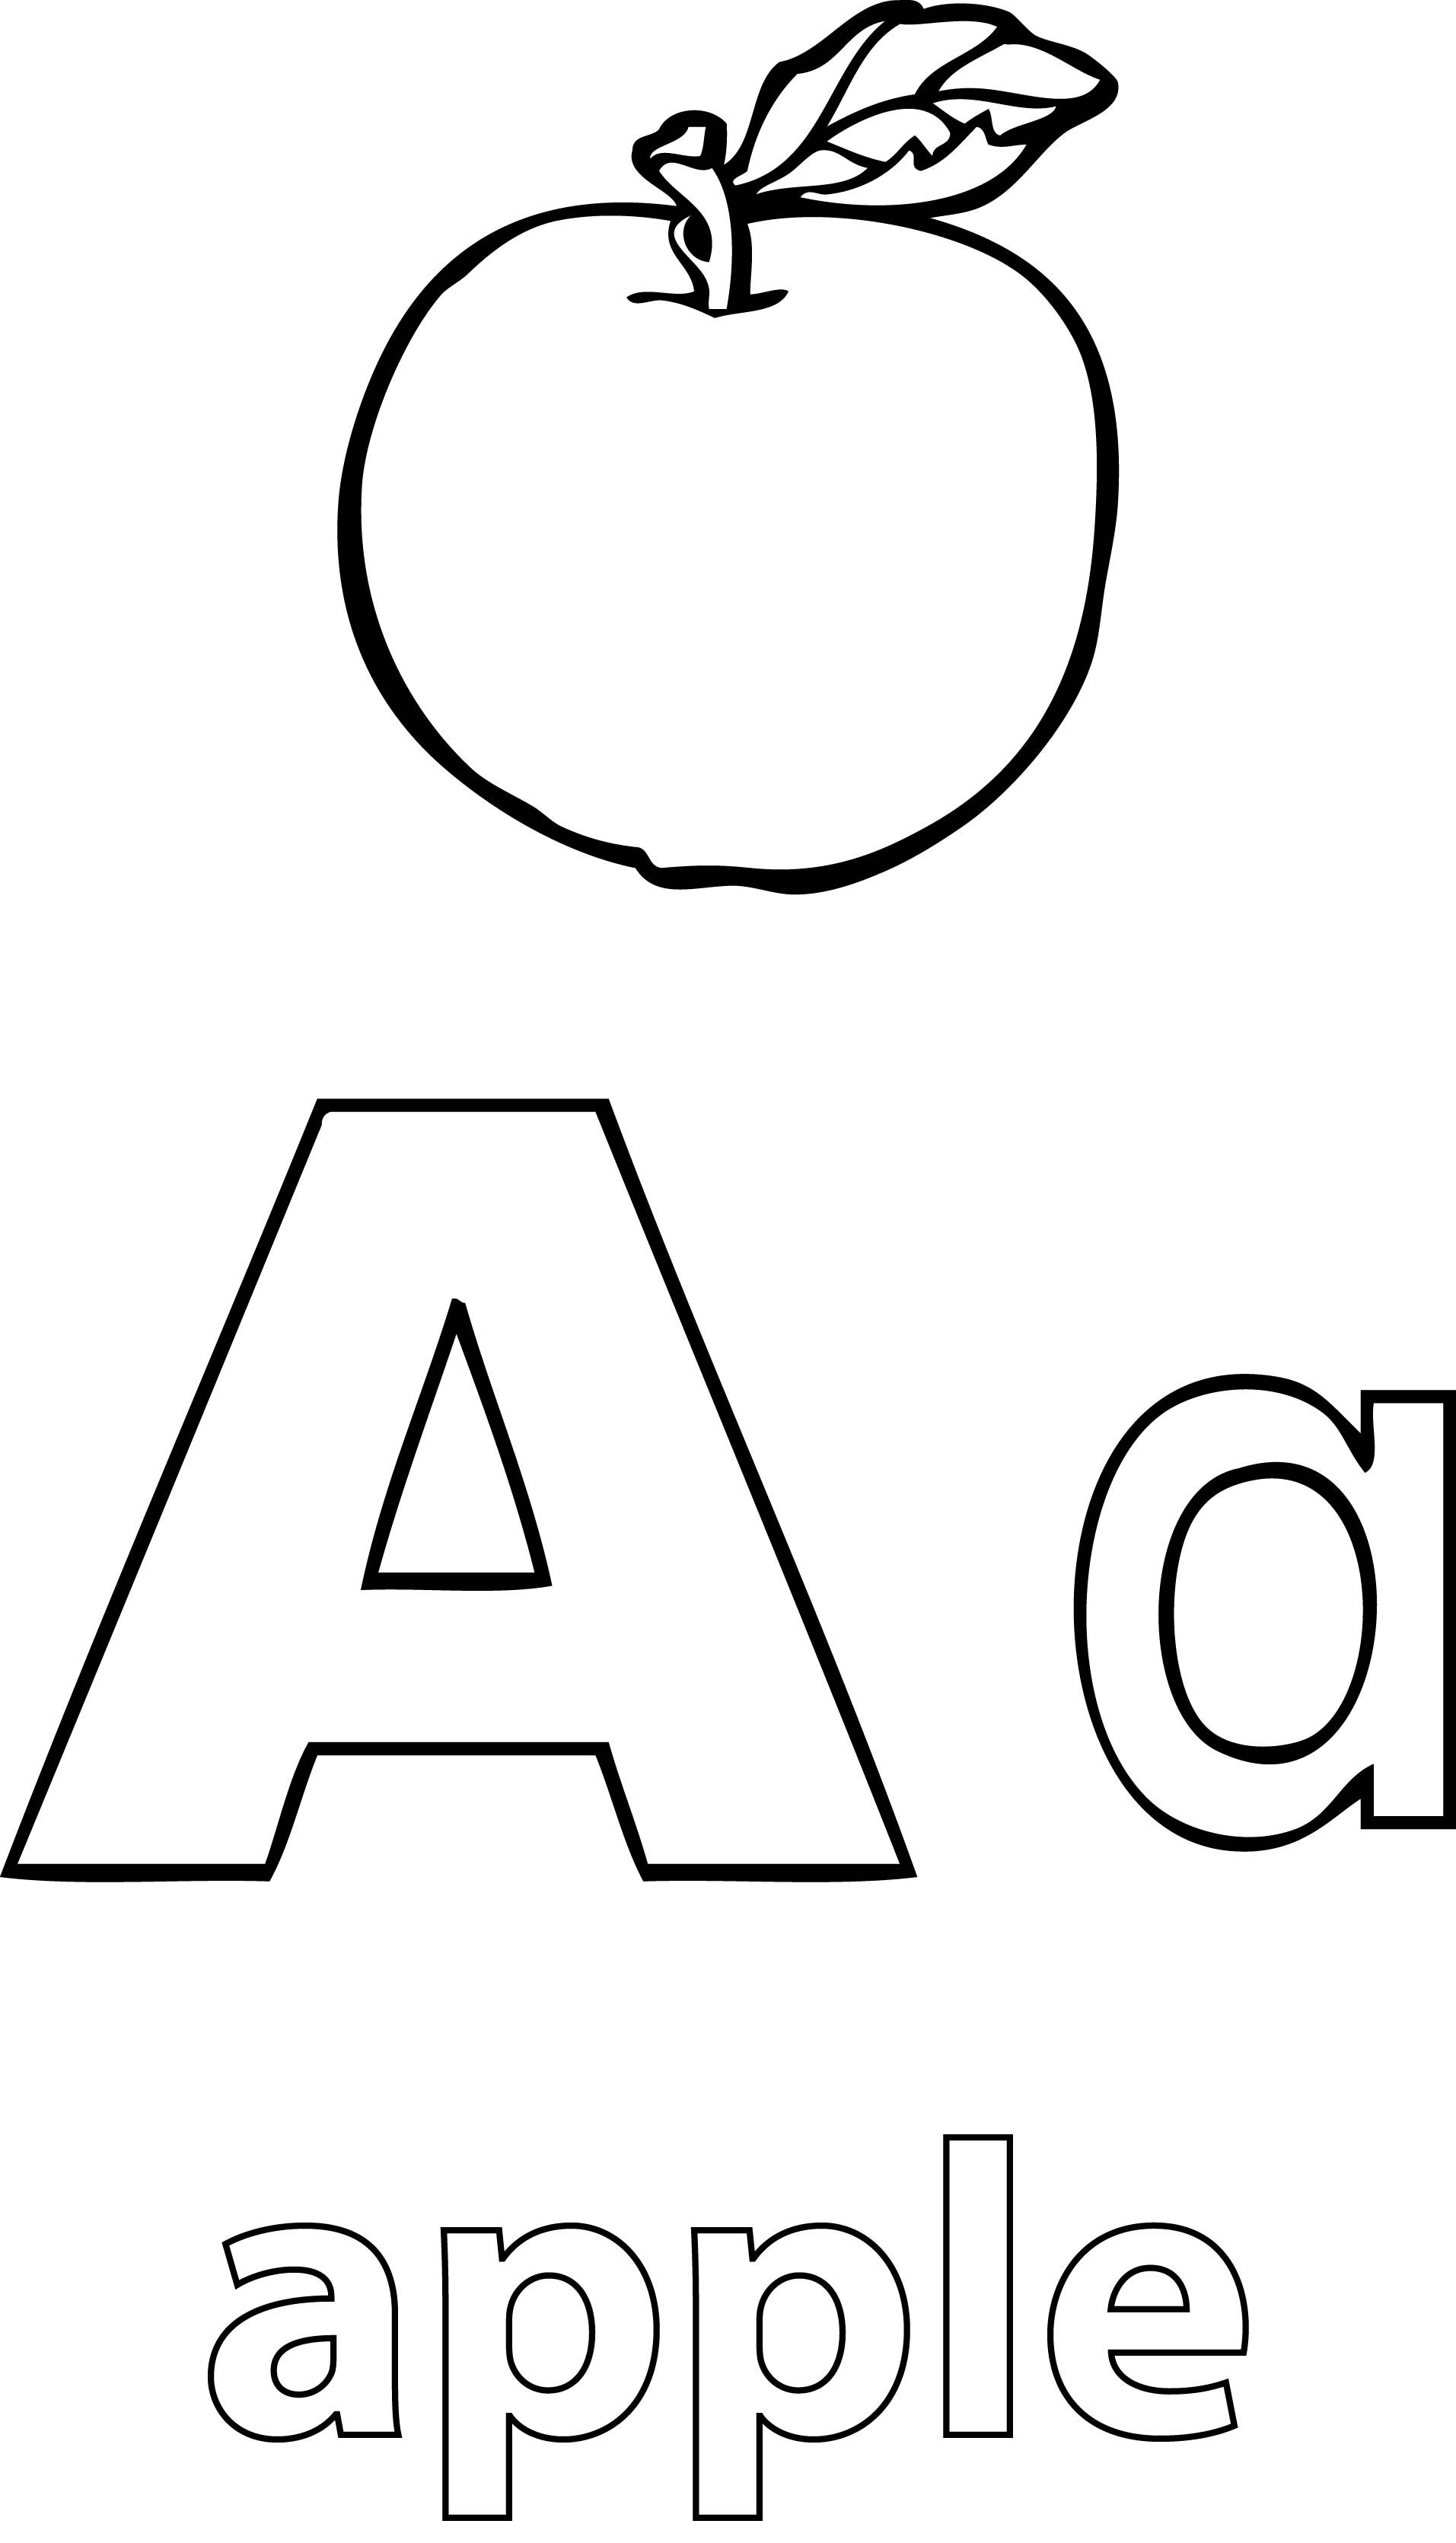 A Alphabet Apple Coloring Page wecoloringpage Apple